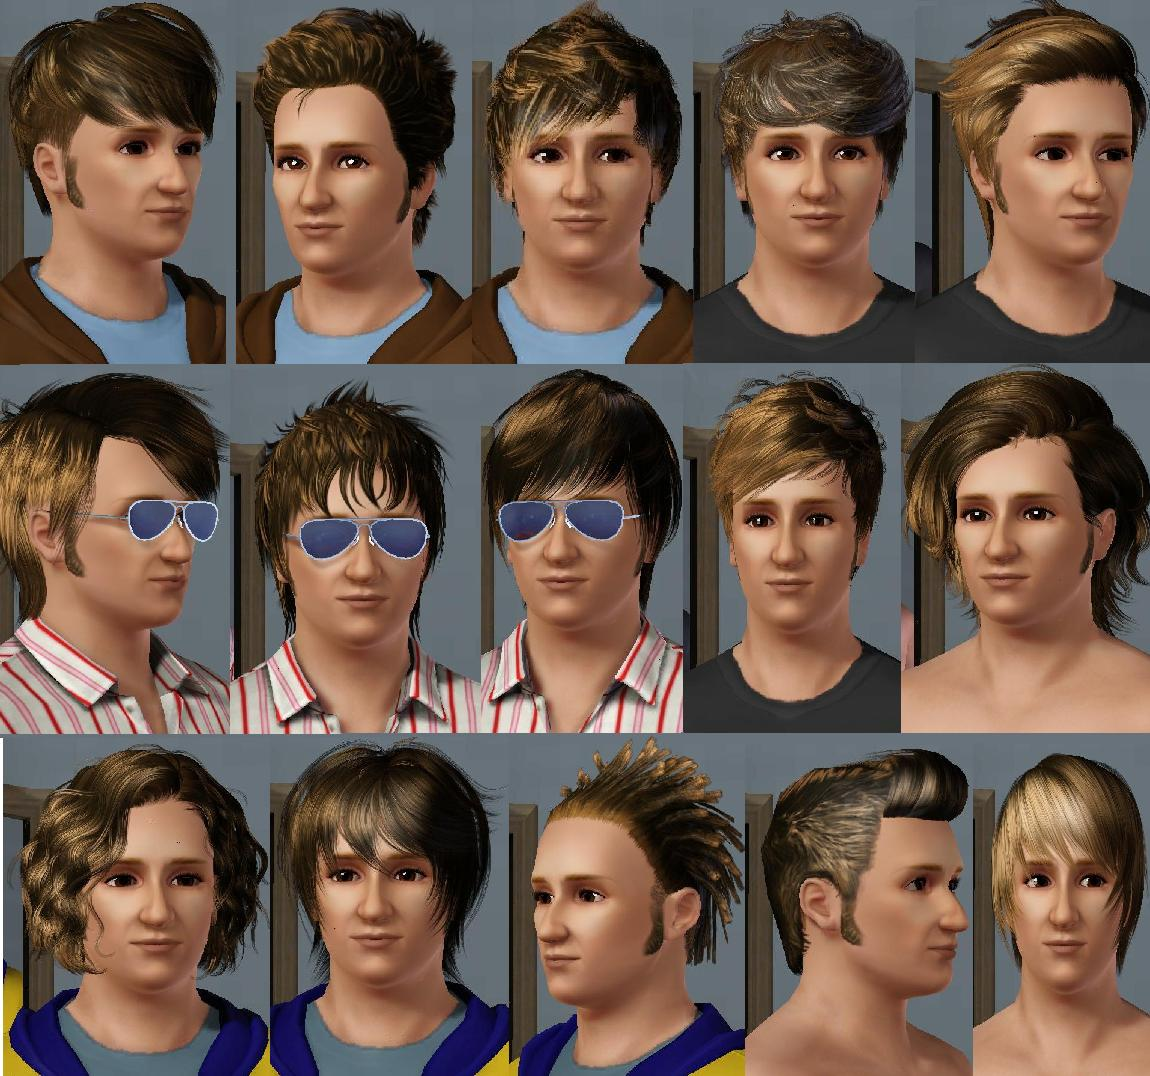 Sims 3 Late Night Male Hairstyles